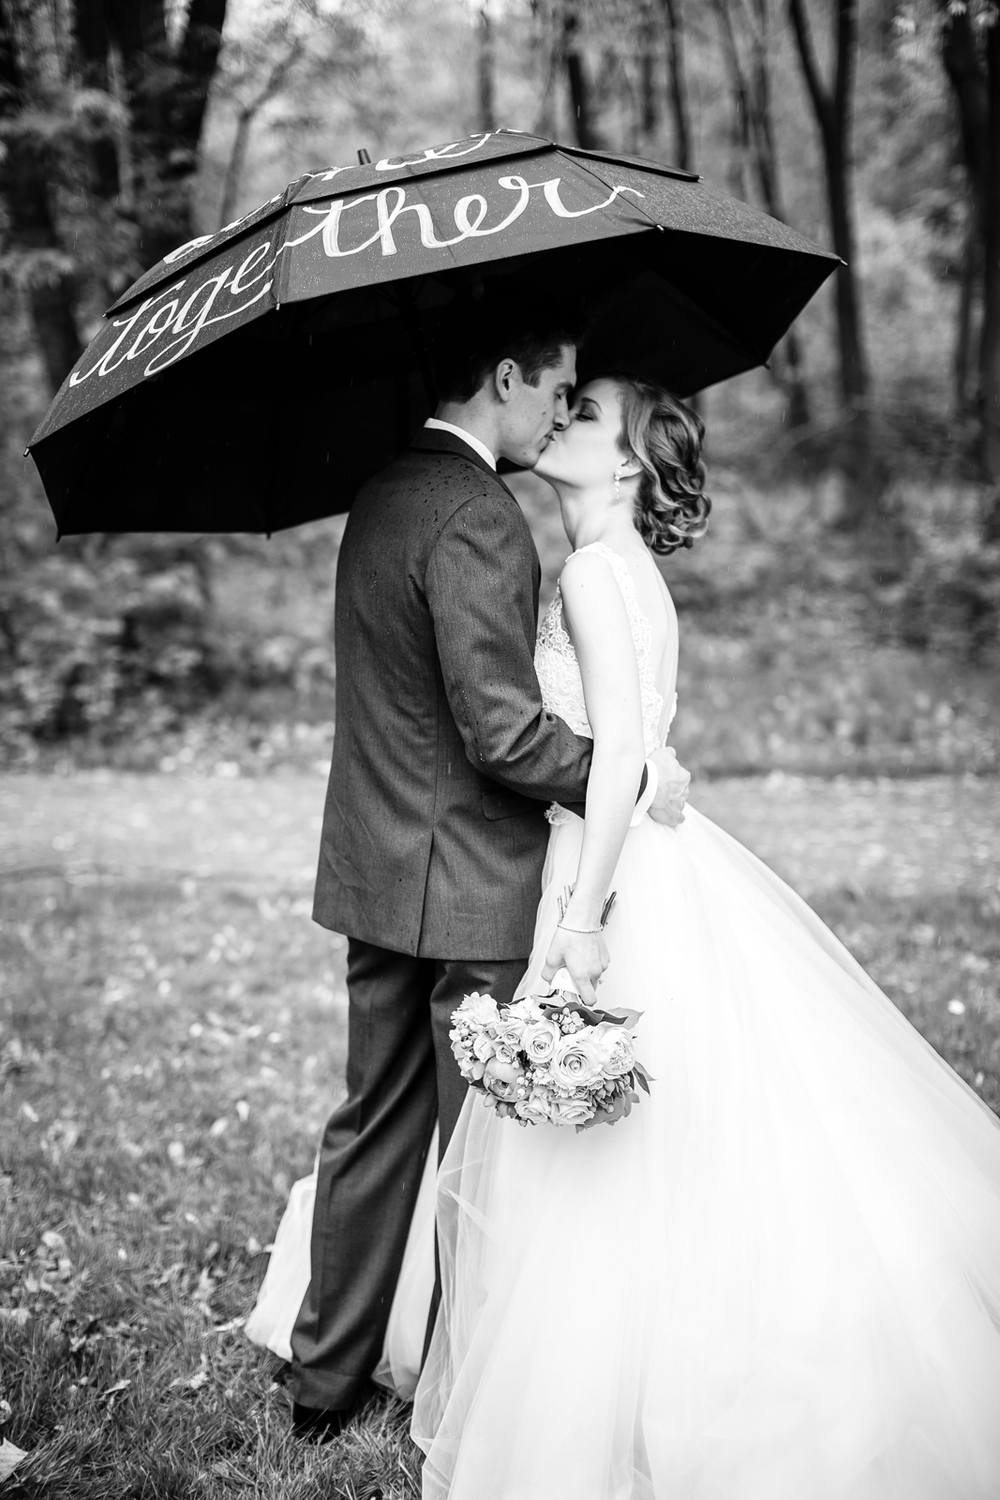 Rain Umbrellas Wedding Day Bride Groom Wedding Party St Louis Wedding Photographer Oldani Photography 2.jpg